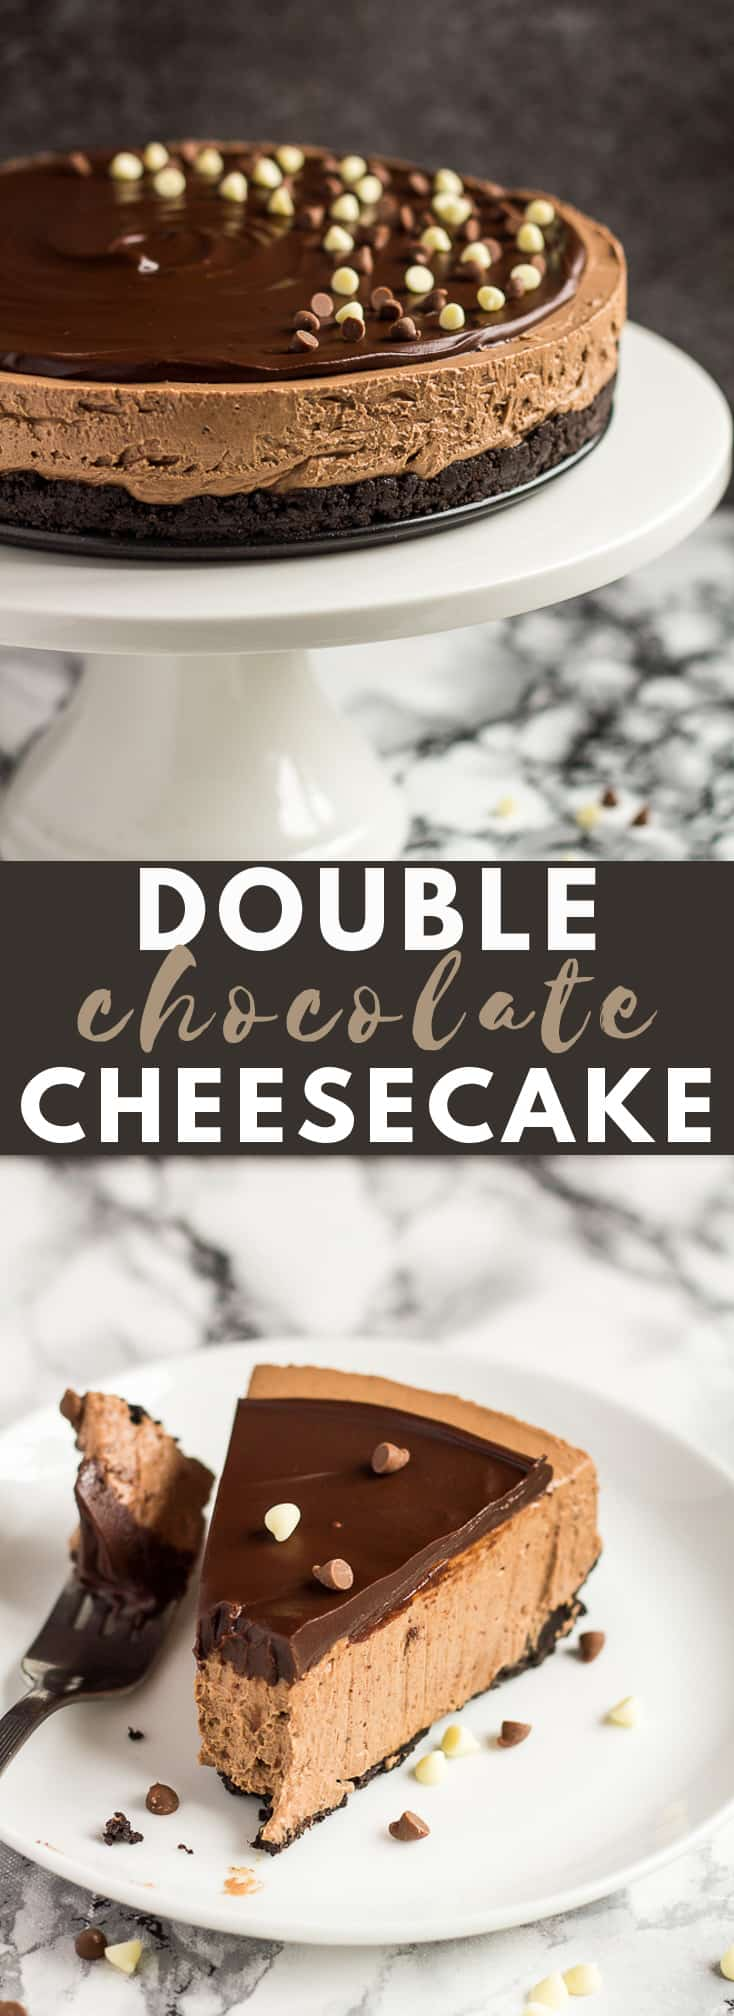 No-Bake Double Chocolate Cheesecake- Deliciously creamy NO-BAKE chocolate cheesecake with an Oreo crust, and topped with chocolate ganache! #chocolate #cheesecake #nobake #cheesecakerecipes